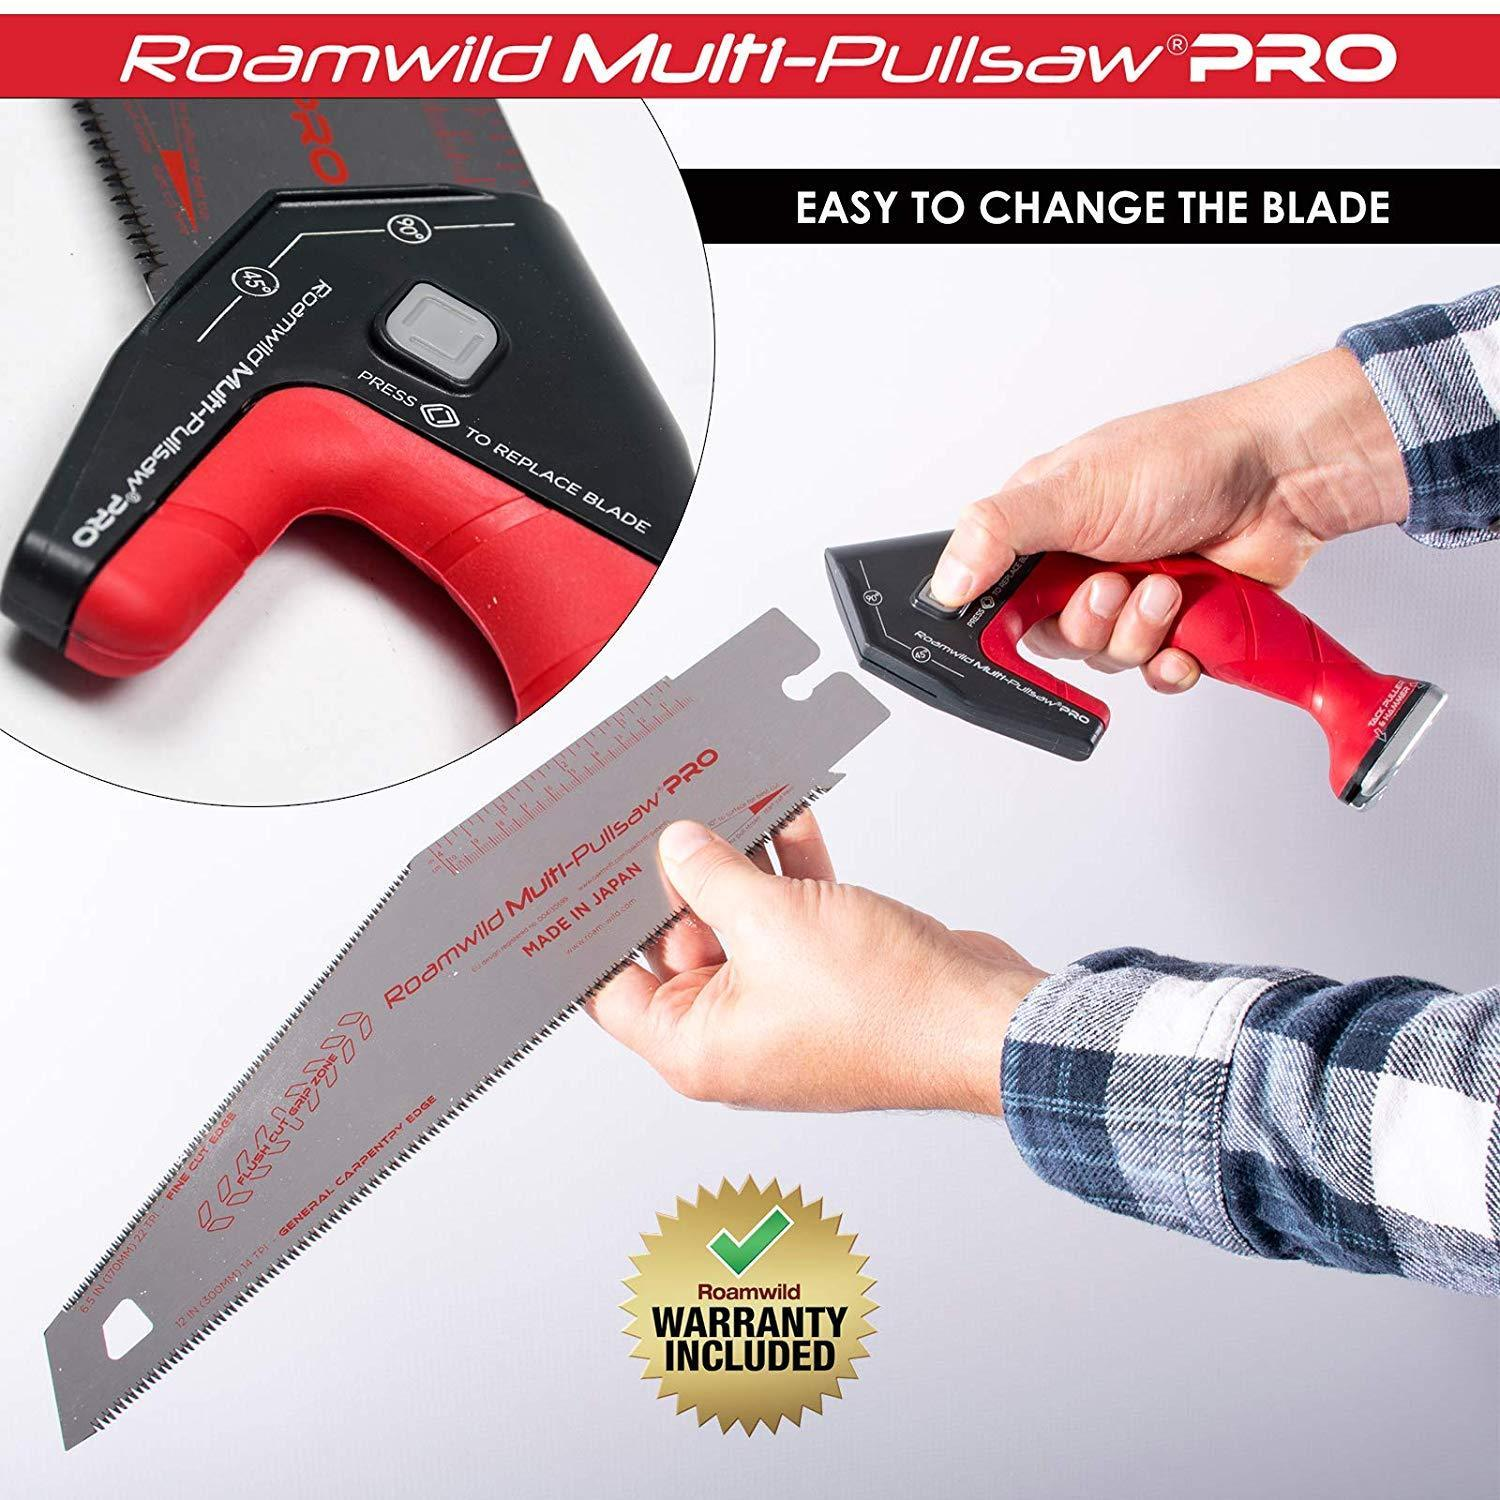 Roamwild Multi Pull Saw PRO Japanese Hand Saw - 2 Saws In 1